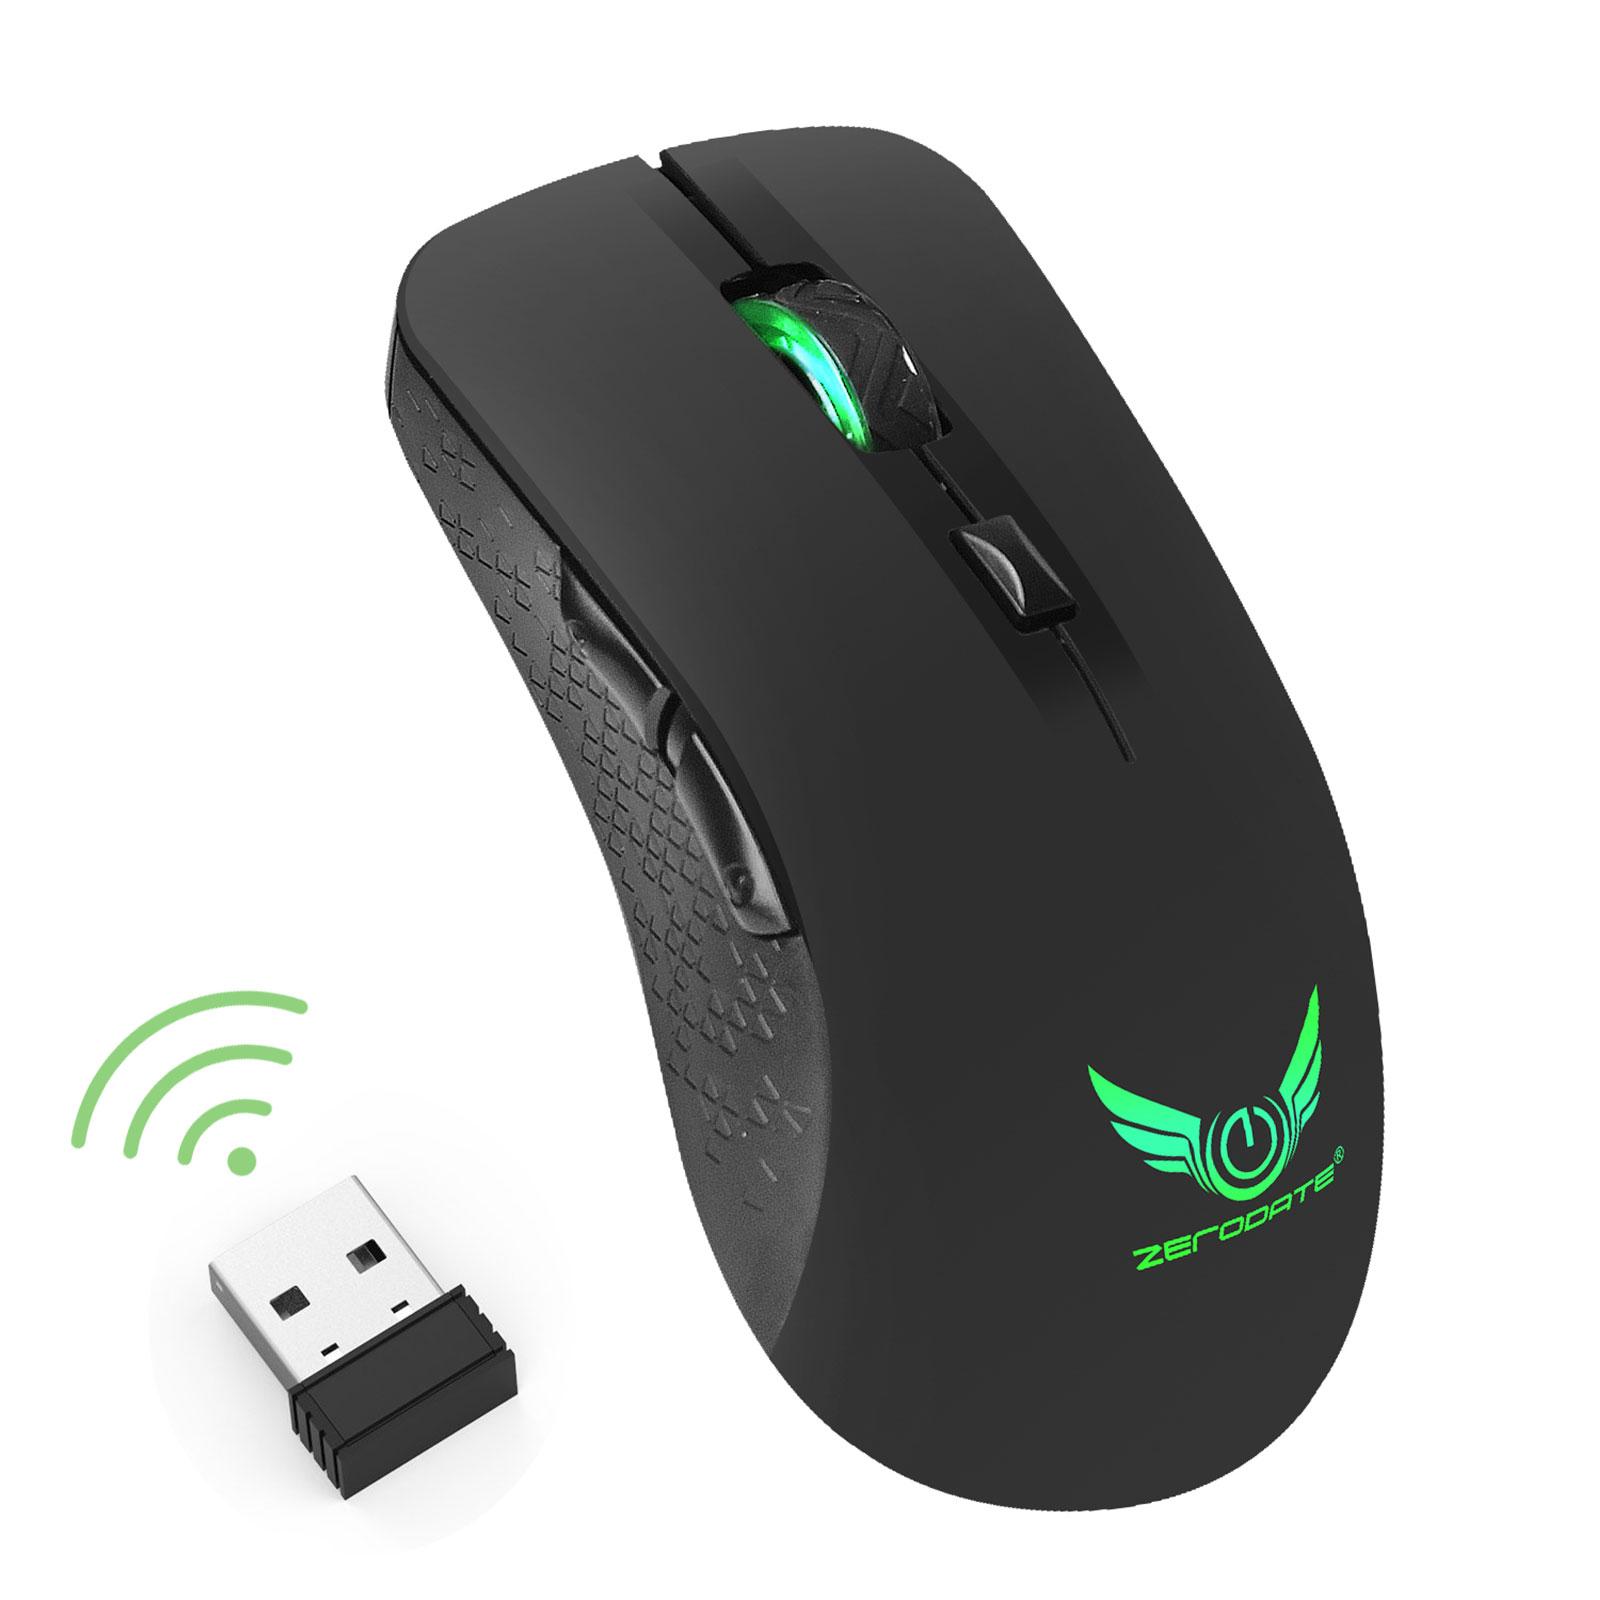 Gaming Mouse with RGB LED Lighting, 2.4G Wireless Game Mice for Computer/ PC/ Laptop/ Mac Book with 2400 DPI Optical Gaming Sensor, Ergonomic Design with 6 Buttons